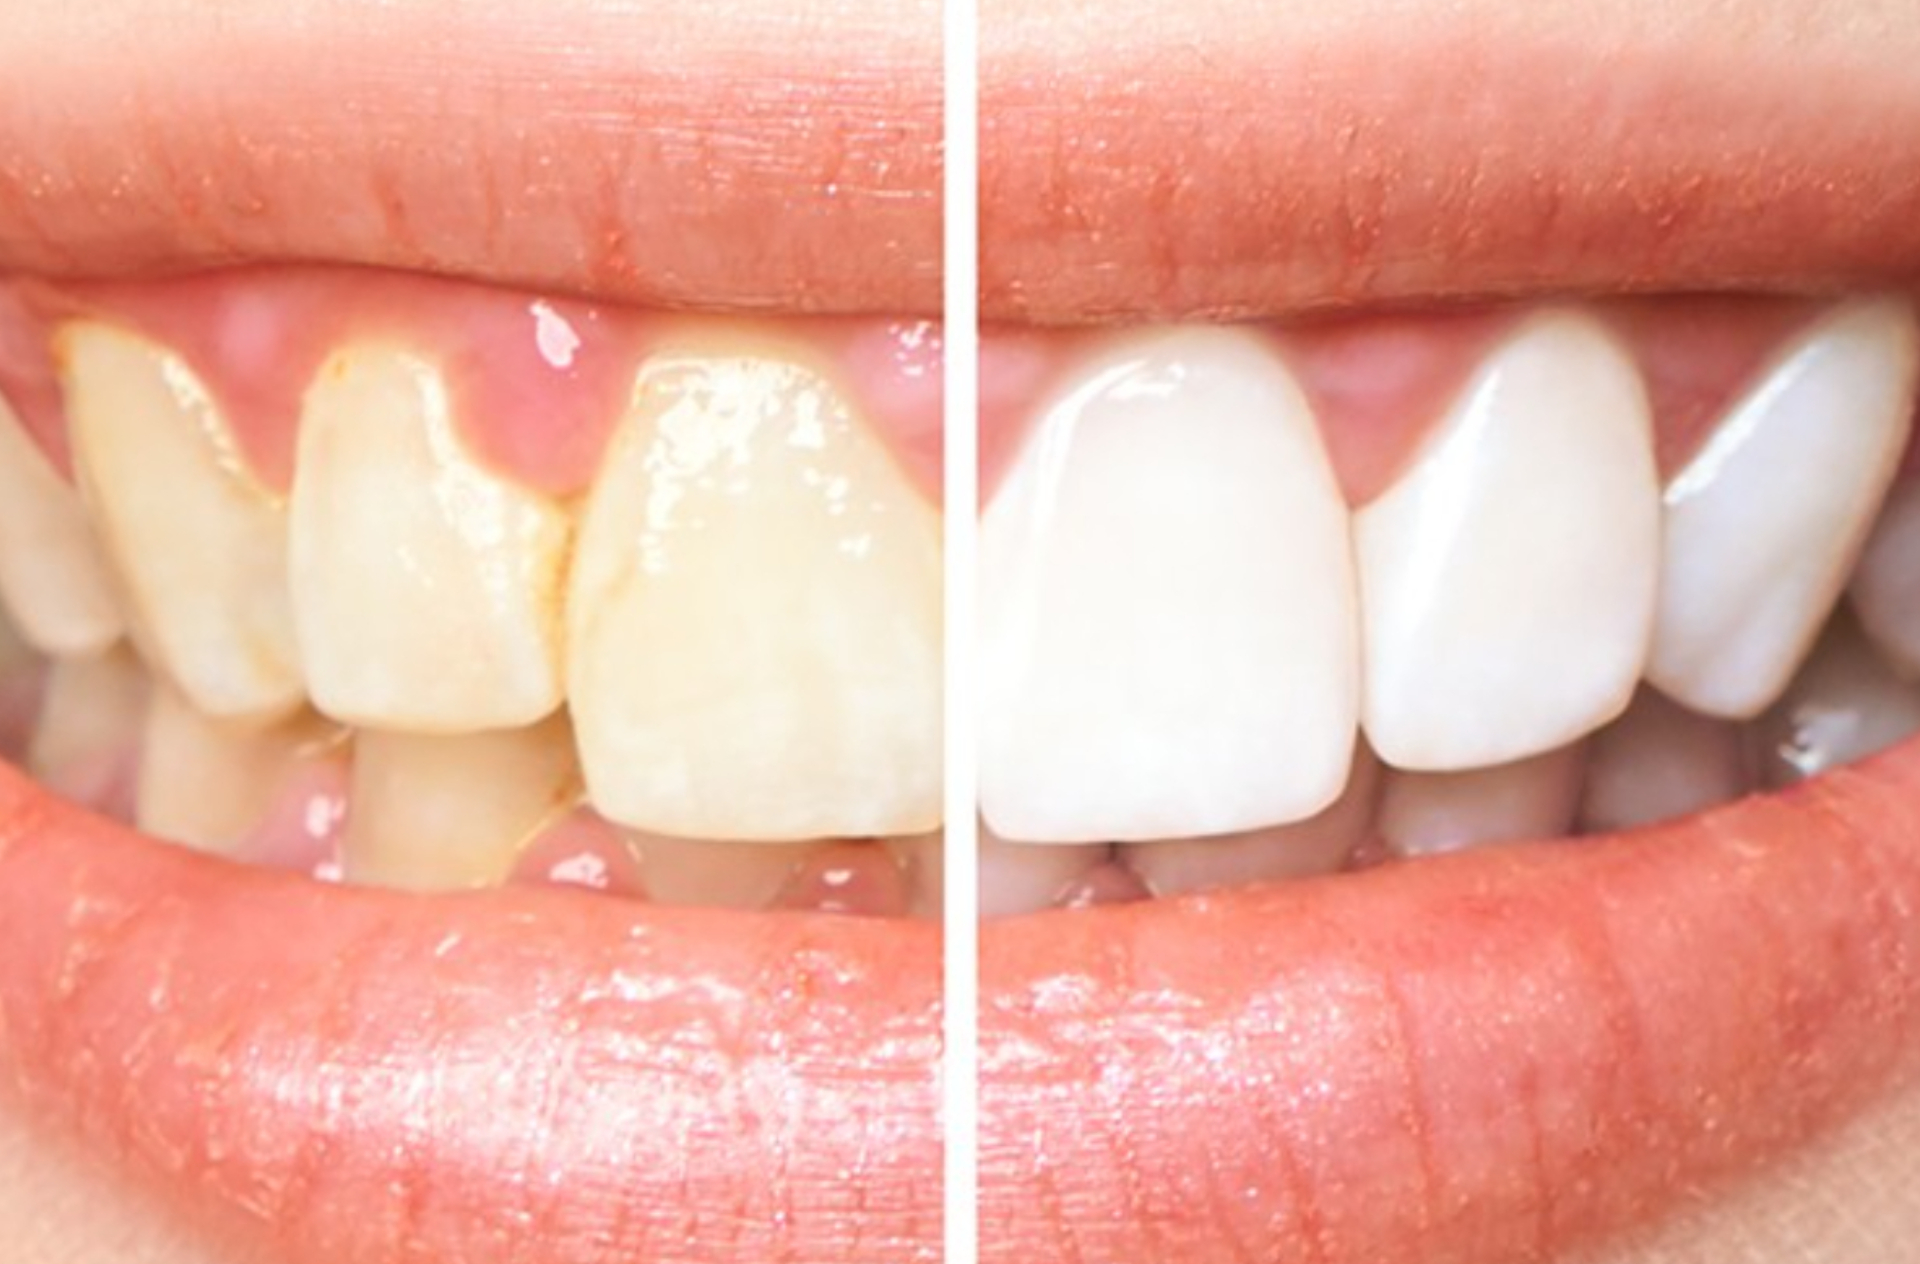 Causal therapy of periodontitis